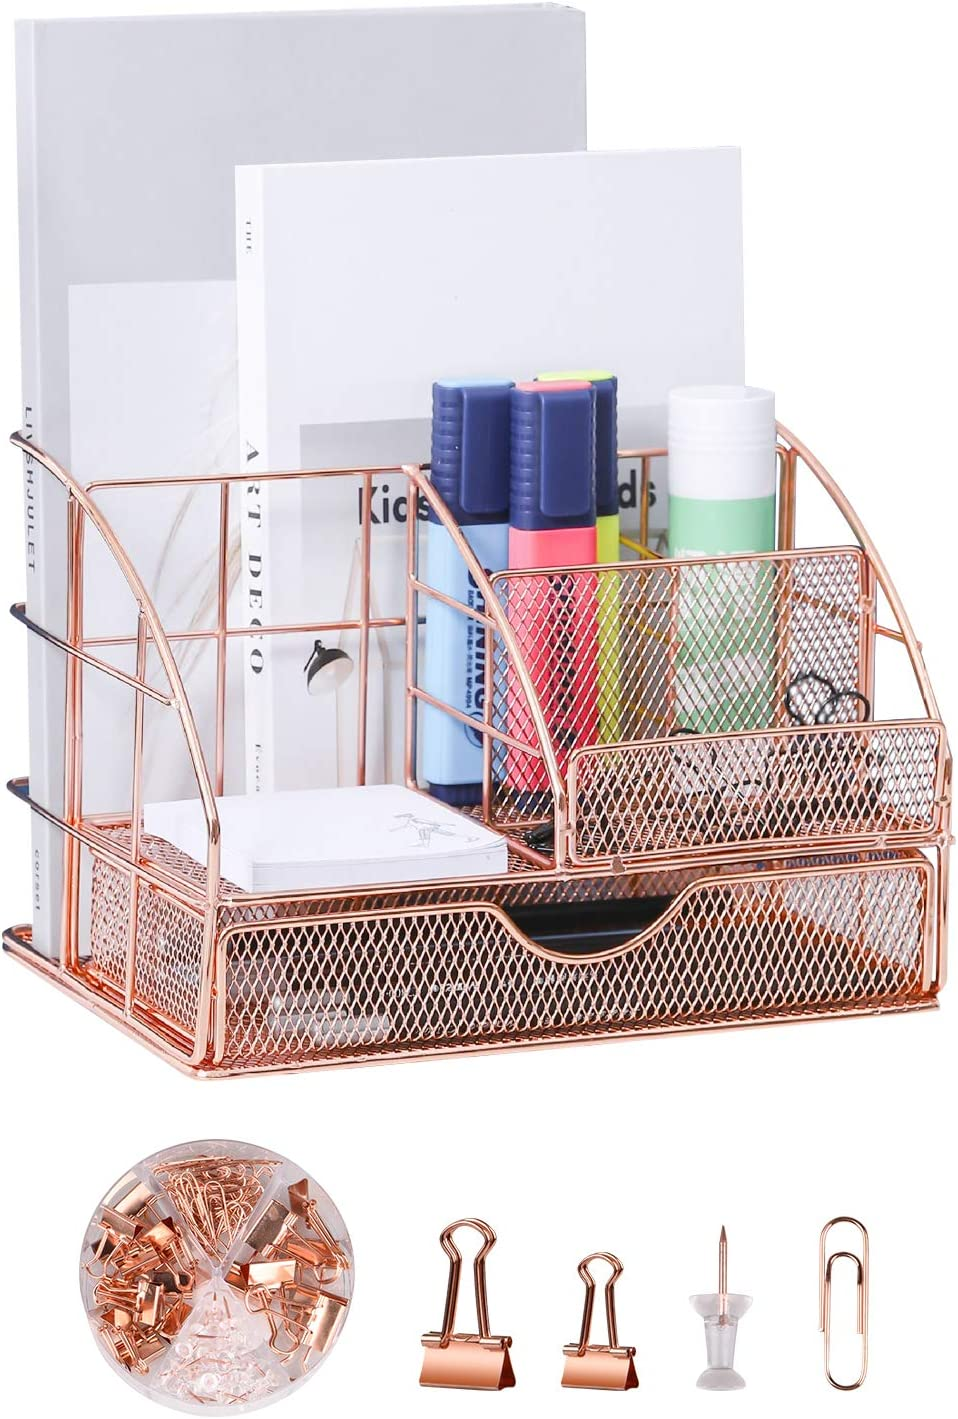 Rose Gold Ddesk Organizer and 9